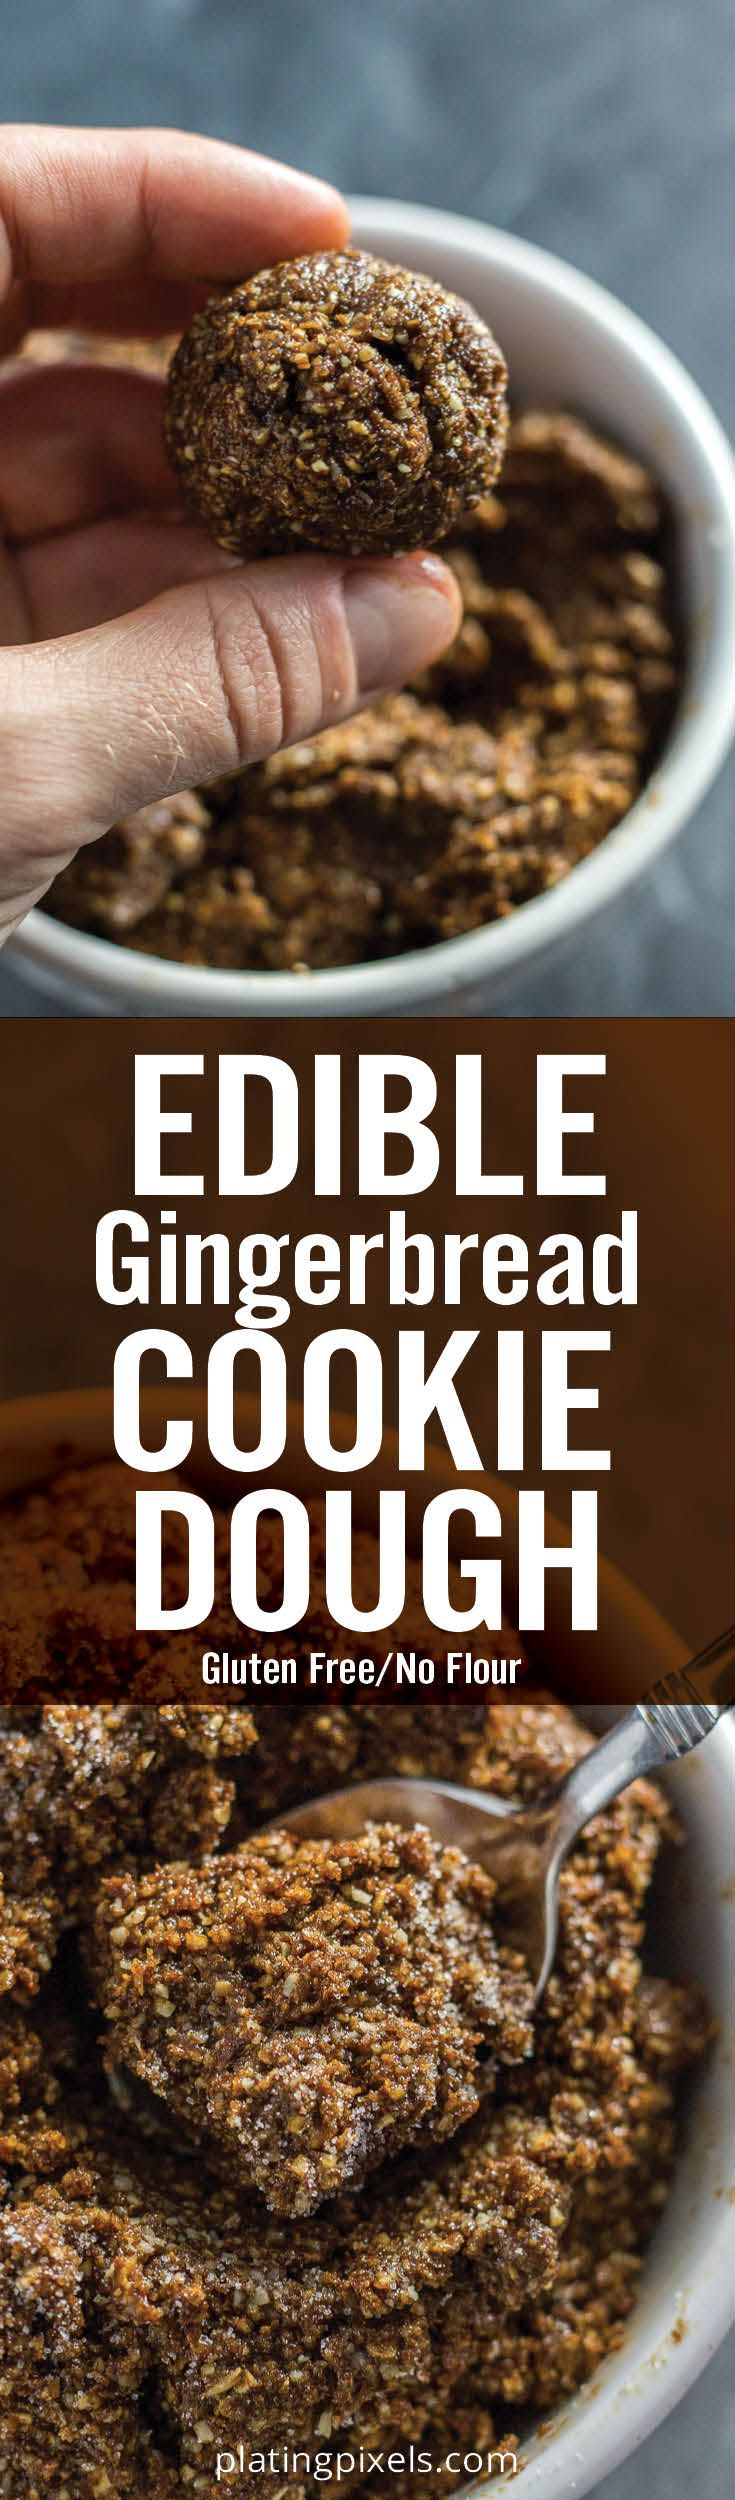 Easy Edible Gingerbread Cookie Dough made without flour. Includes homemade oat flour, butter, molasses, brown sugar and ground ginger. No eggs, gluten free and you can eat this cookie dough raw. - platingpixels.com